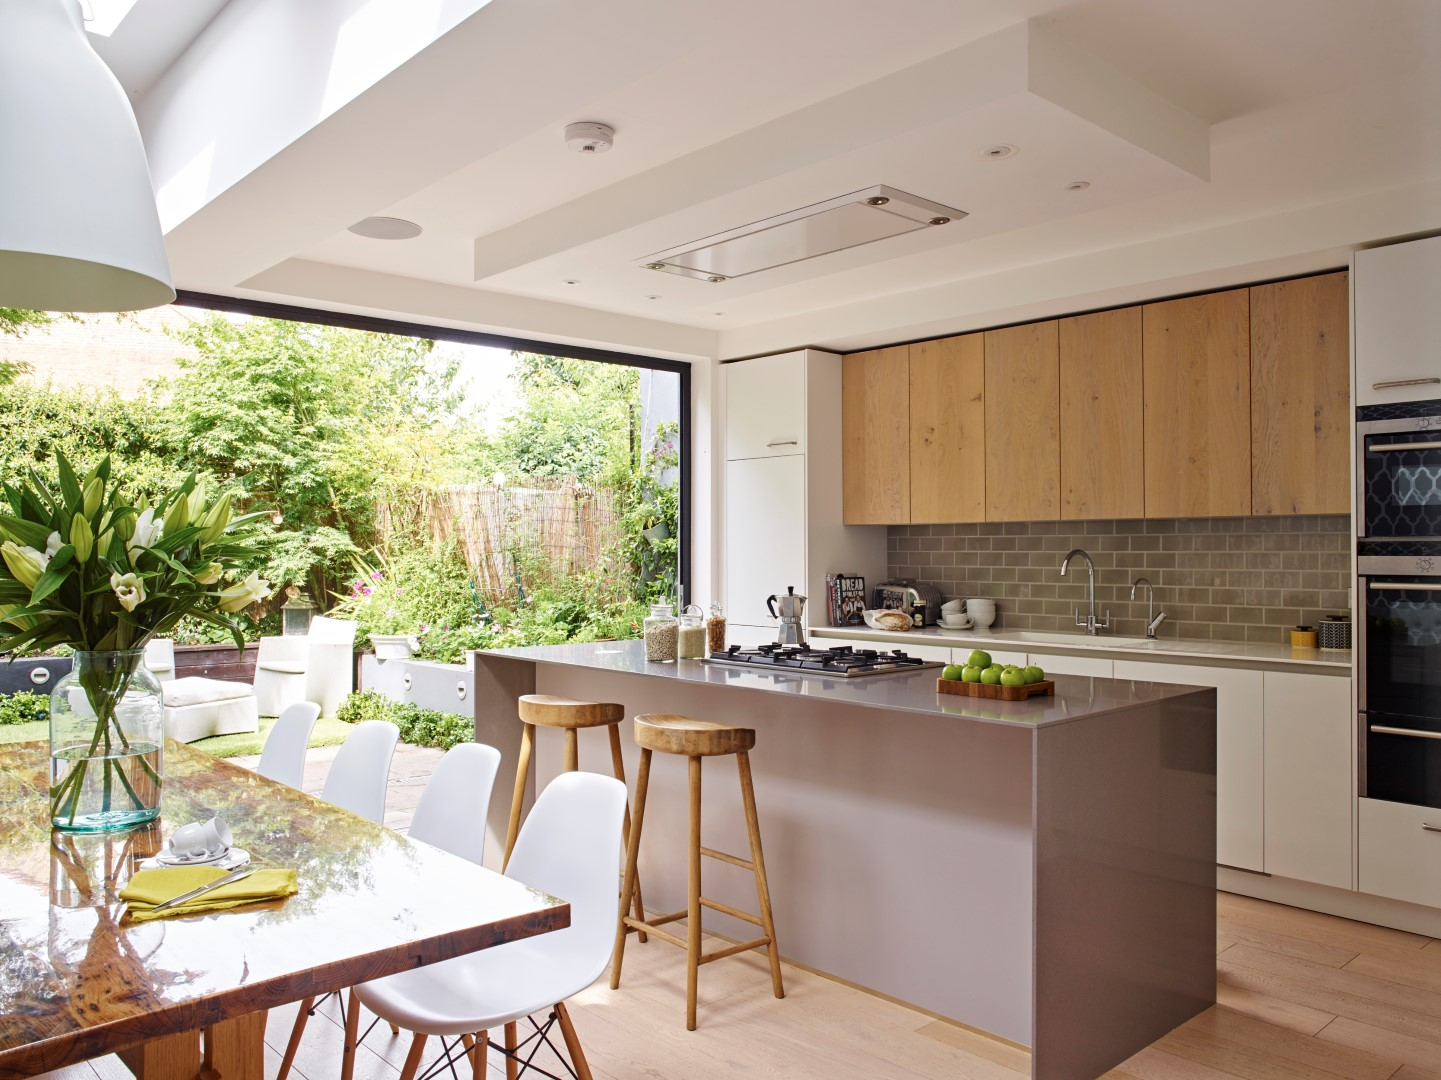 Captivating A Complete West London Kitchen Redesign U0026 Extension By Holloways Of Ludlow